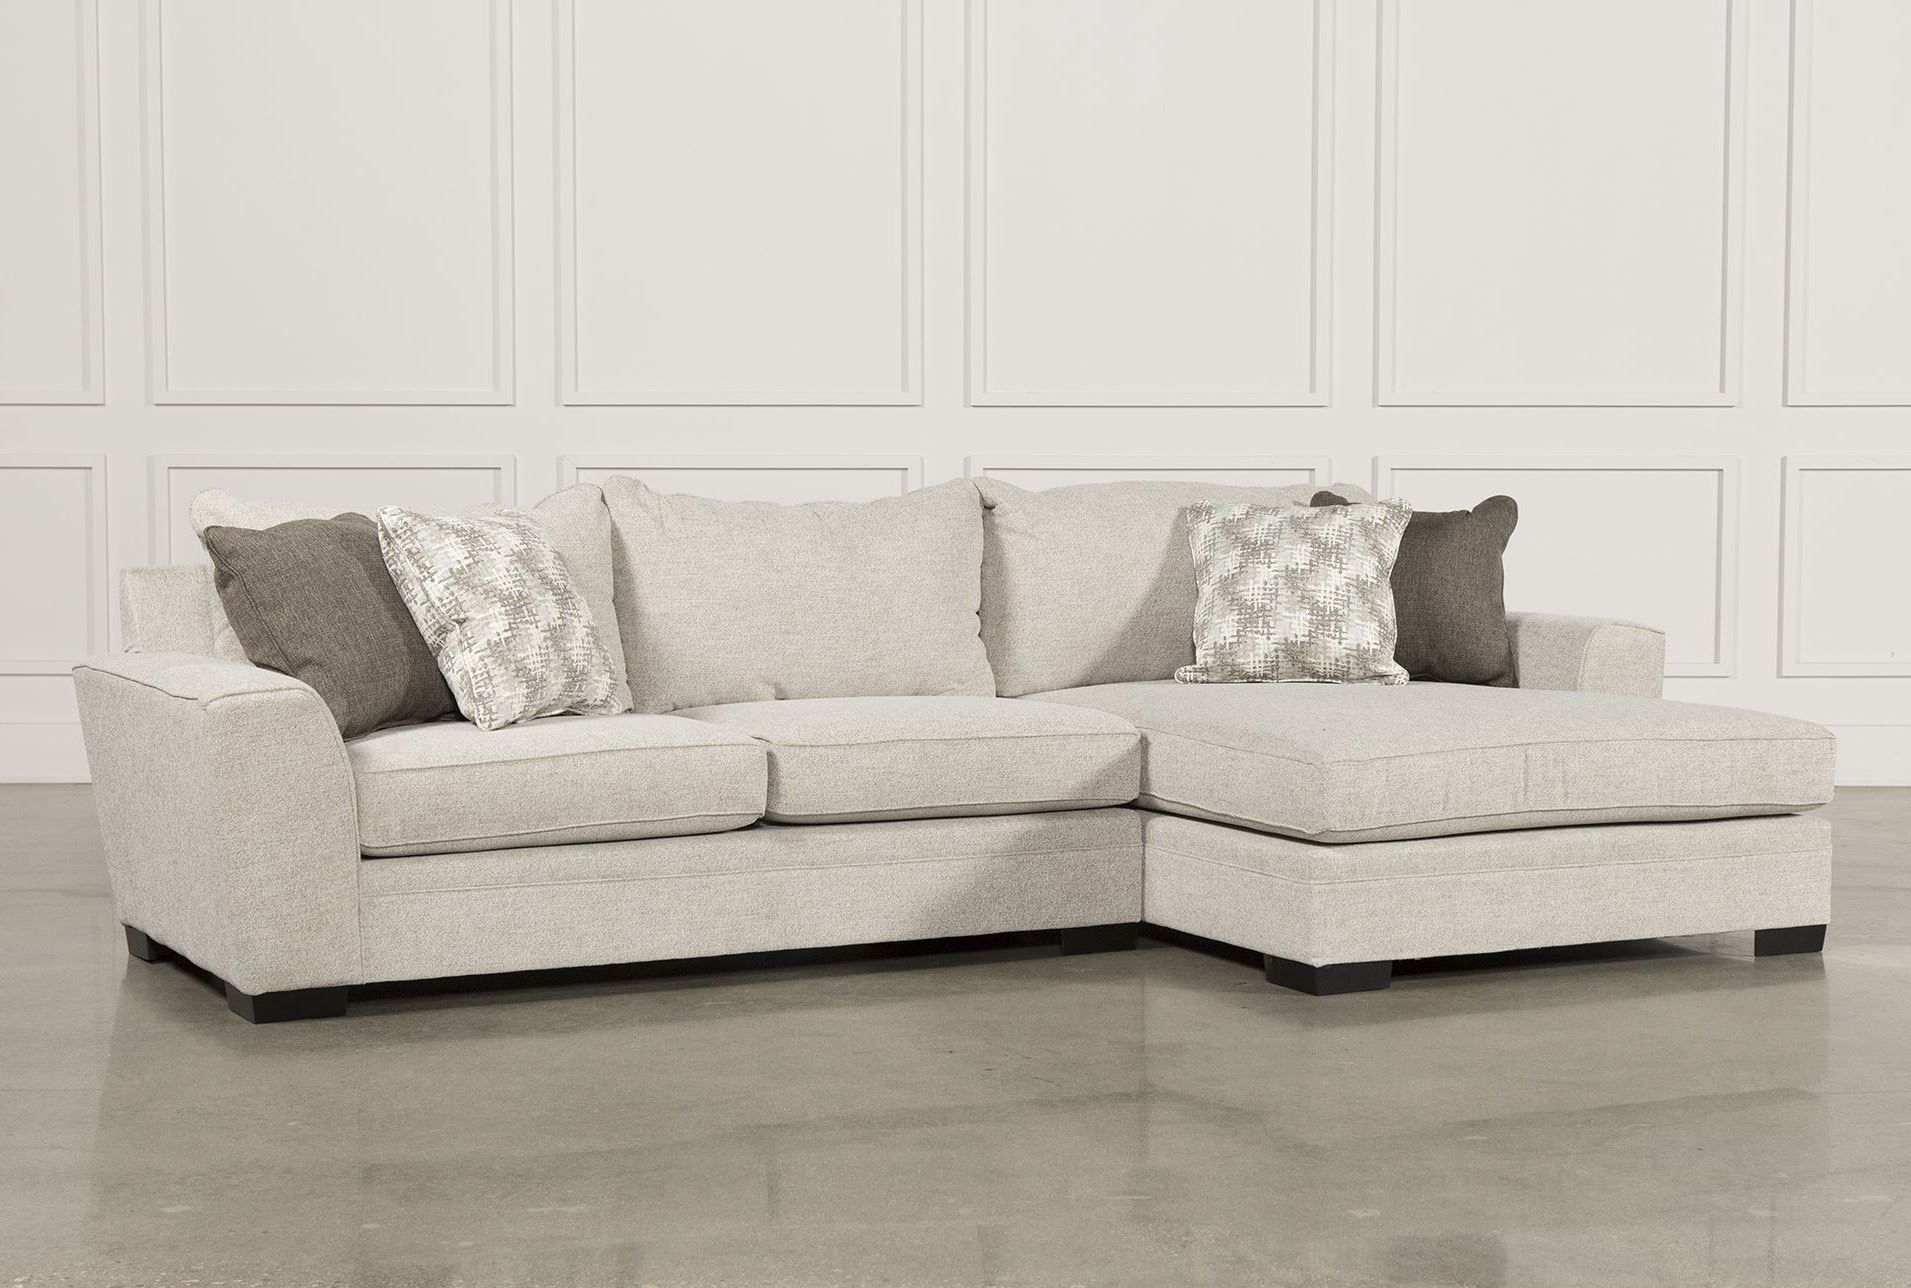 Delano 2 Piece Sectional W/raf Oversized Chaise | New Home with regard to Burton Leather 3 Piece Sectionals (Image 6 of 30)